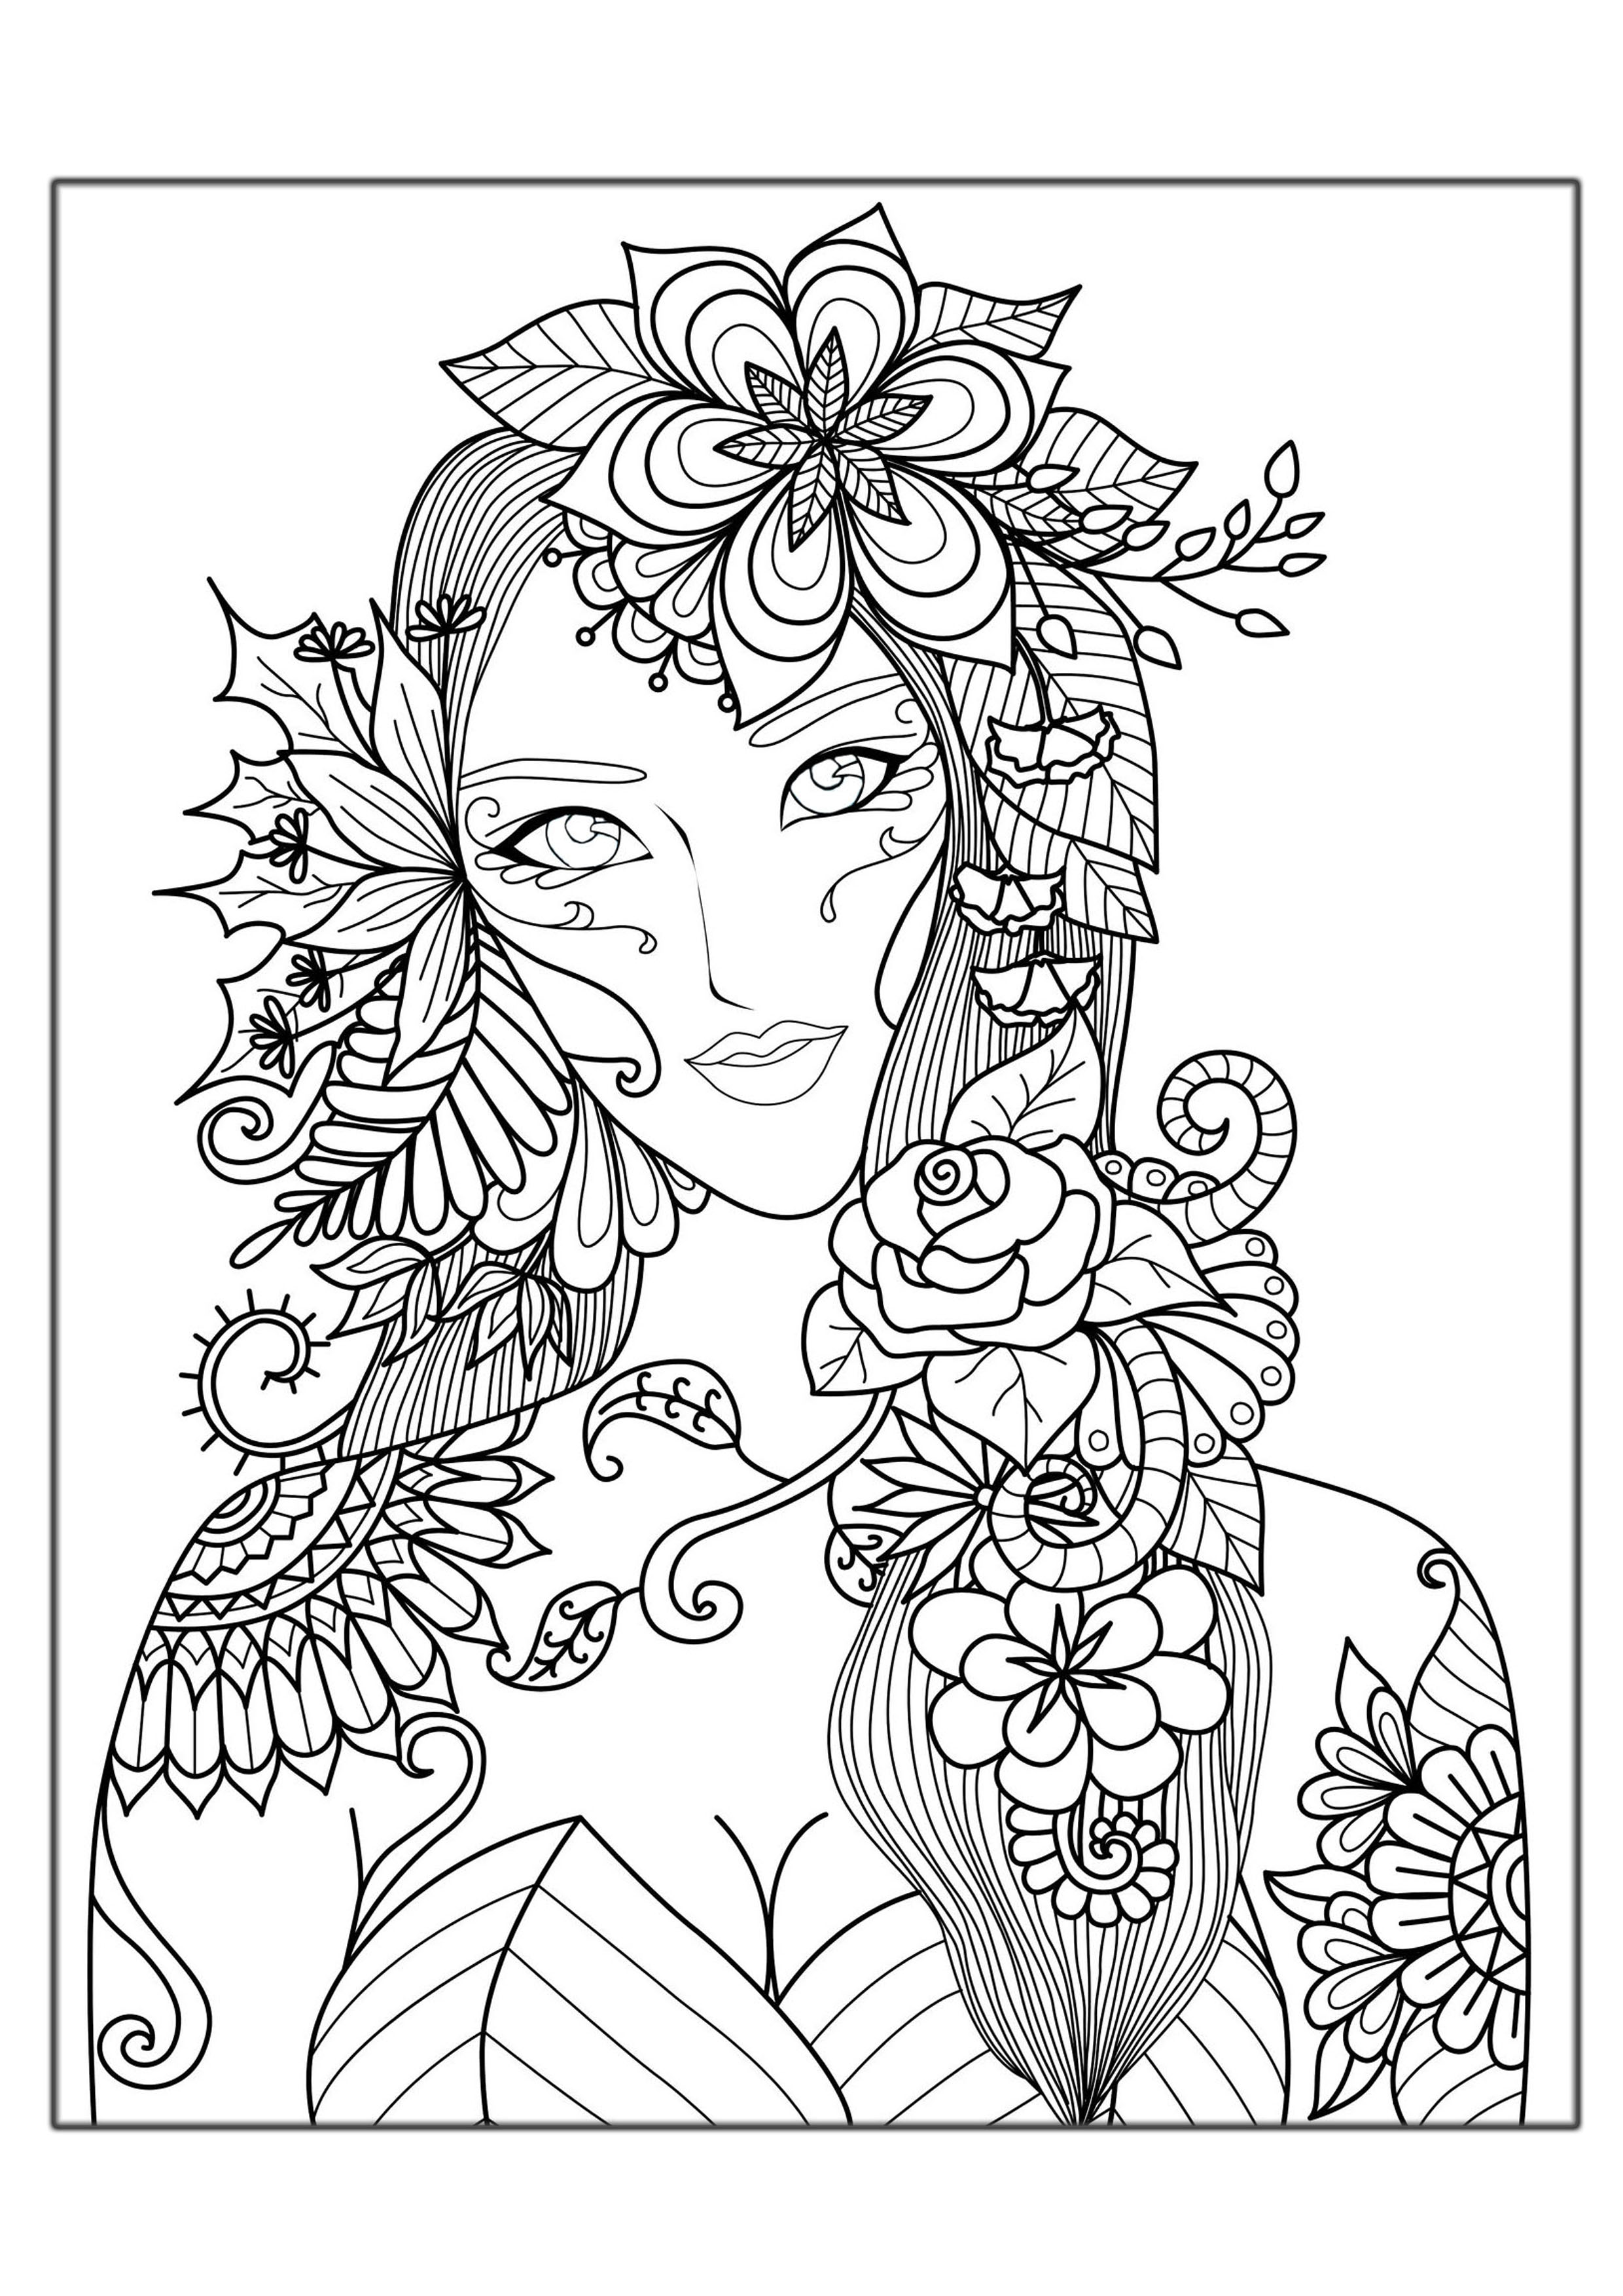 coloring free hard coloring pages for adults best coloring pages for kids free coloring 1 1